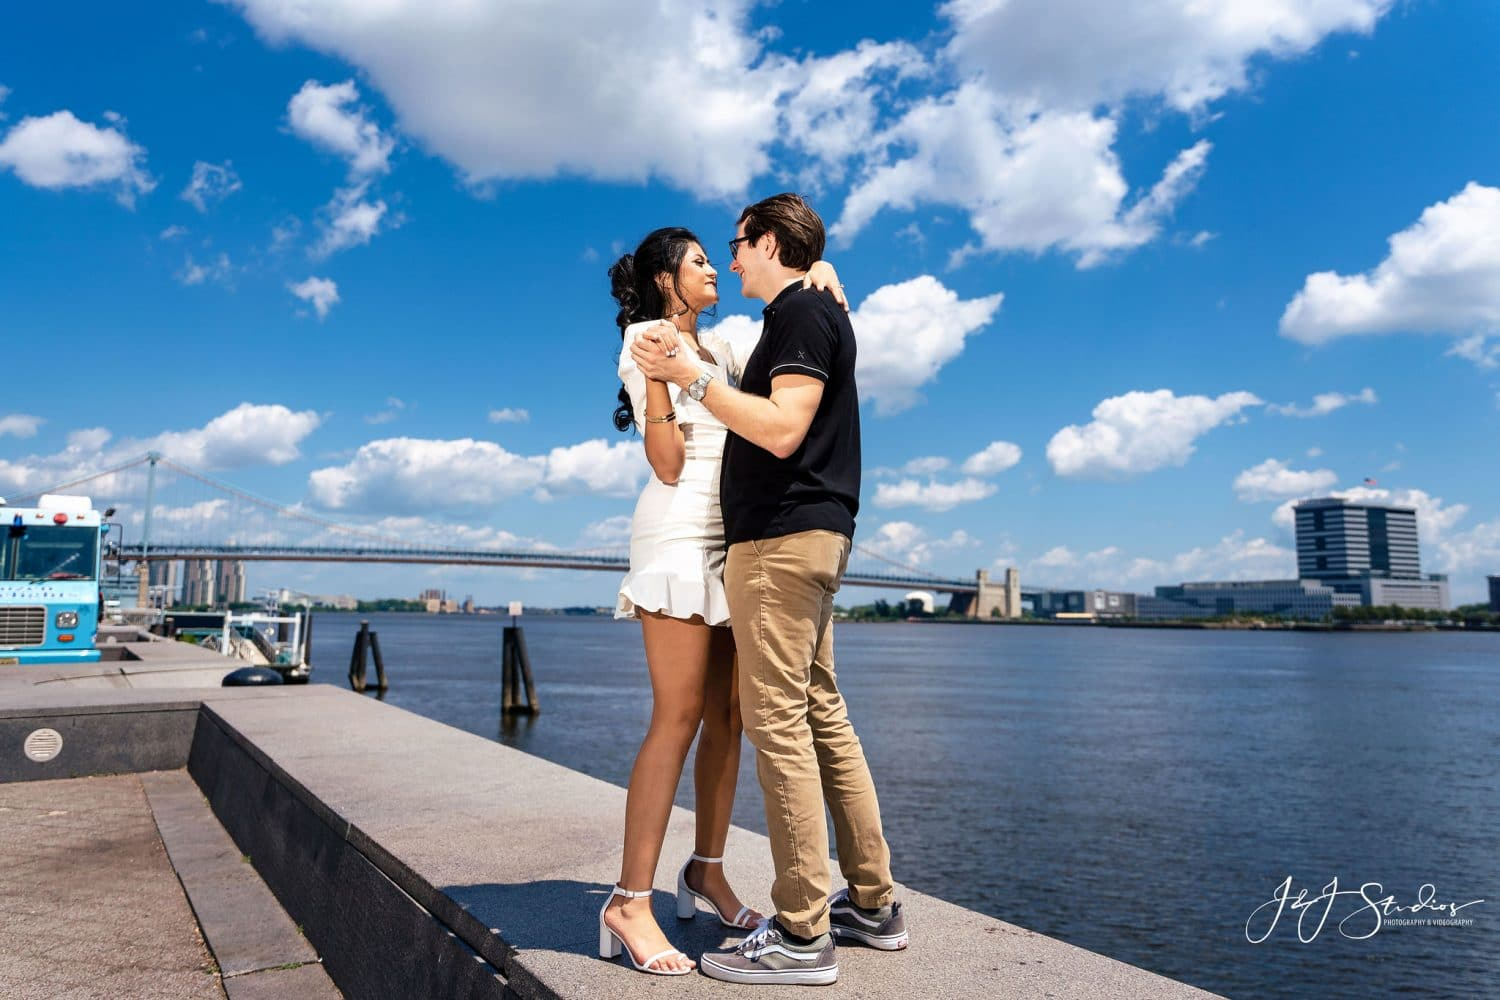 Couple at the Delaware River Waterfront by J&J Studios